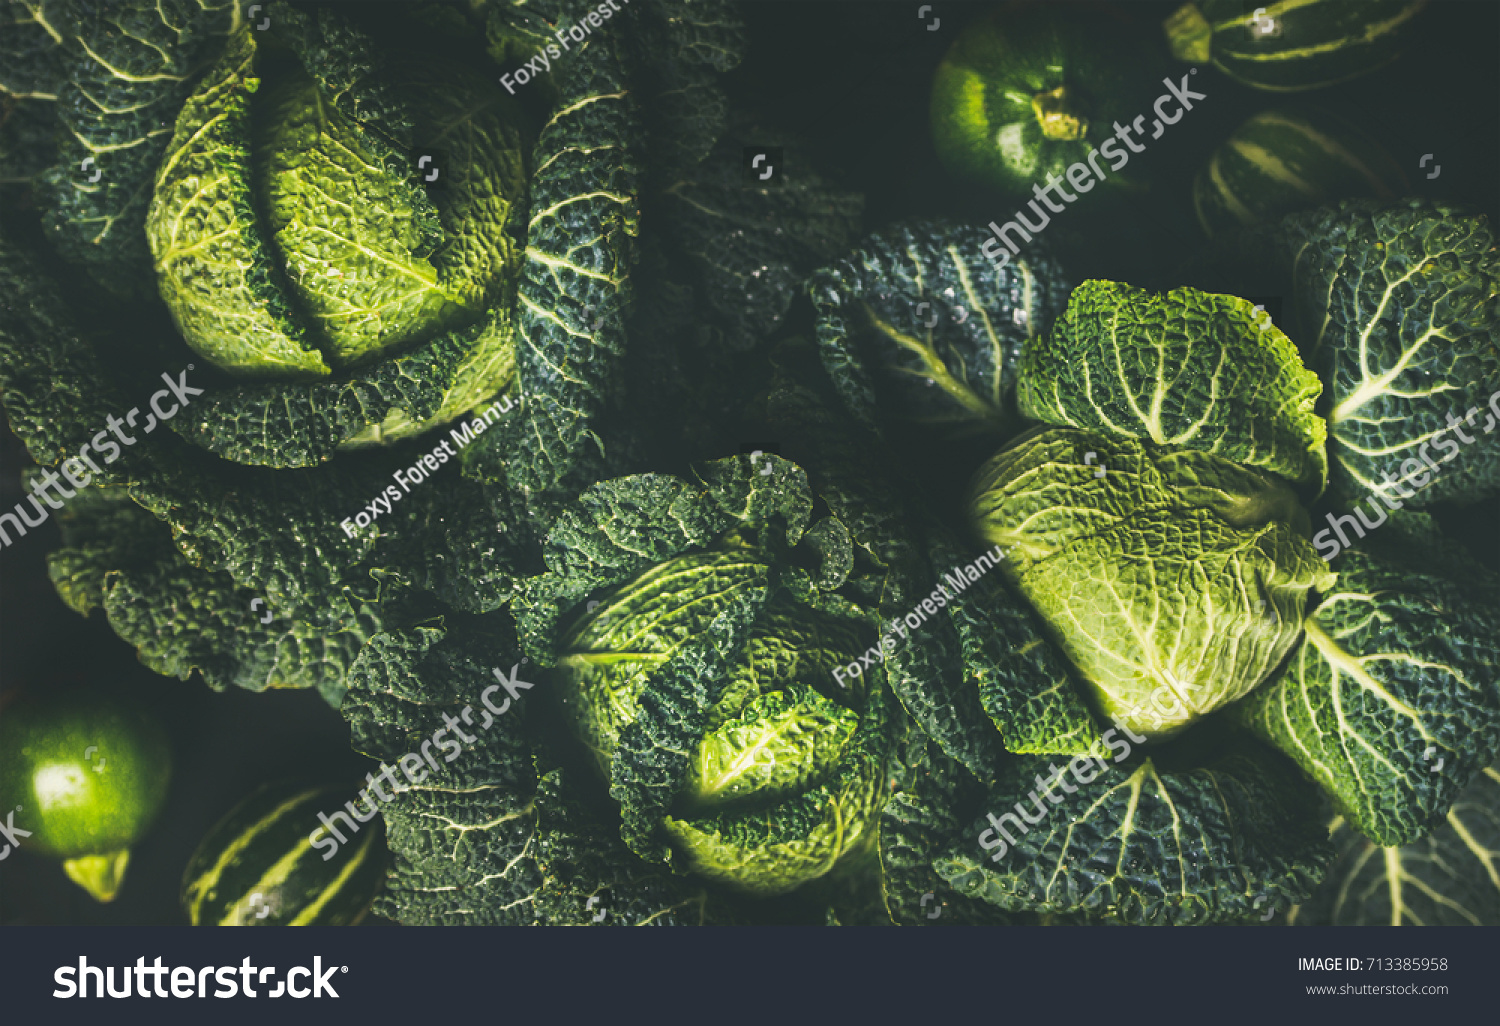 Raw fresh green cabbage texture and background, top view over dark background, selective focus #713385958